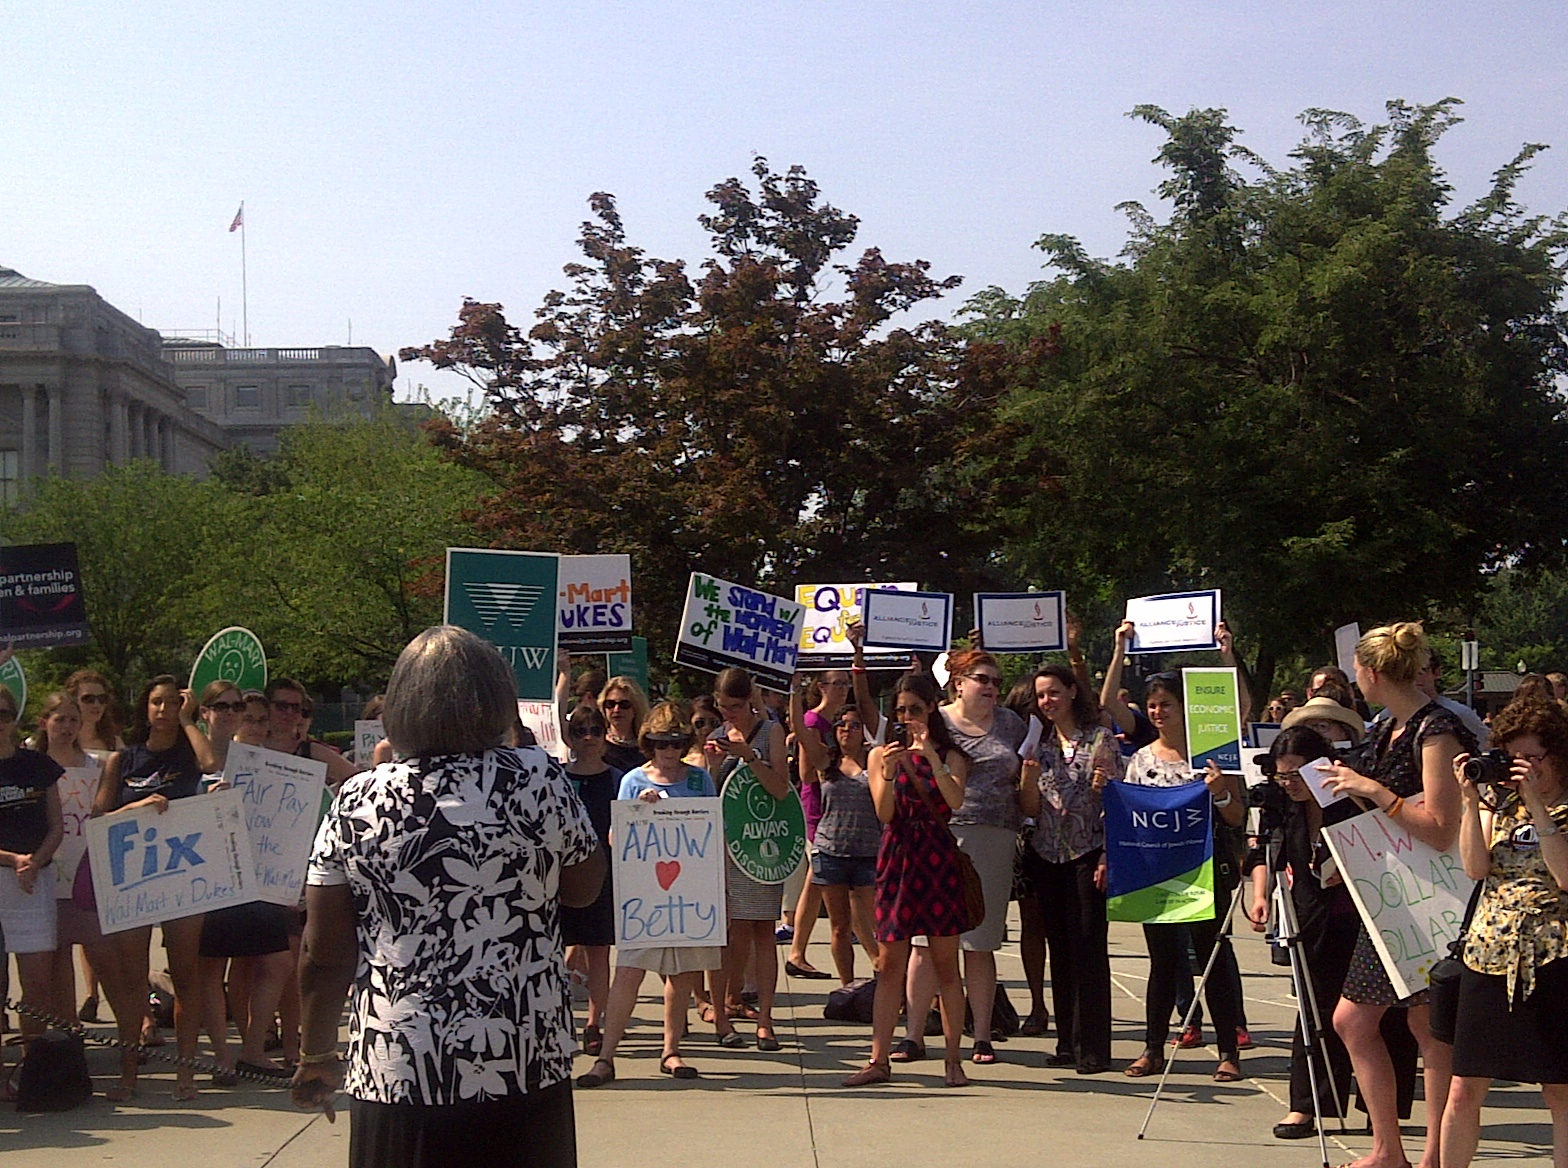 wal mart v dukes betty dukes joins the crowd outside the supreme court building